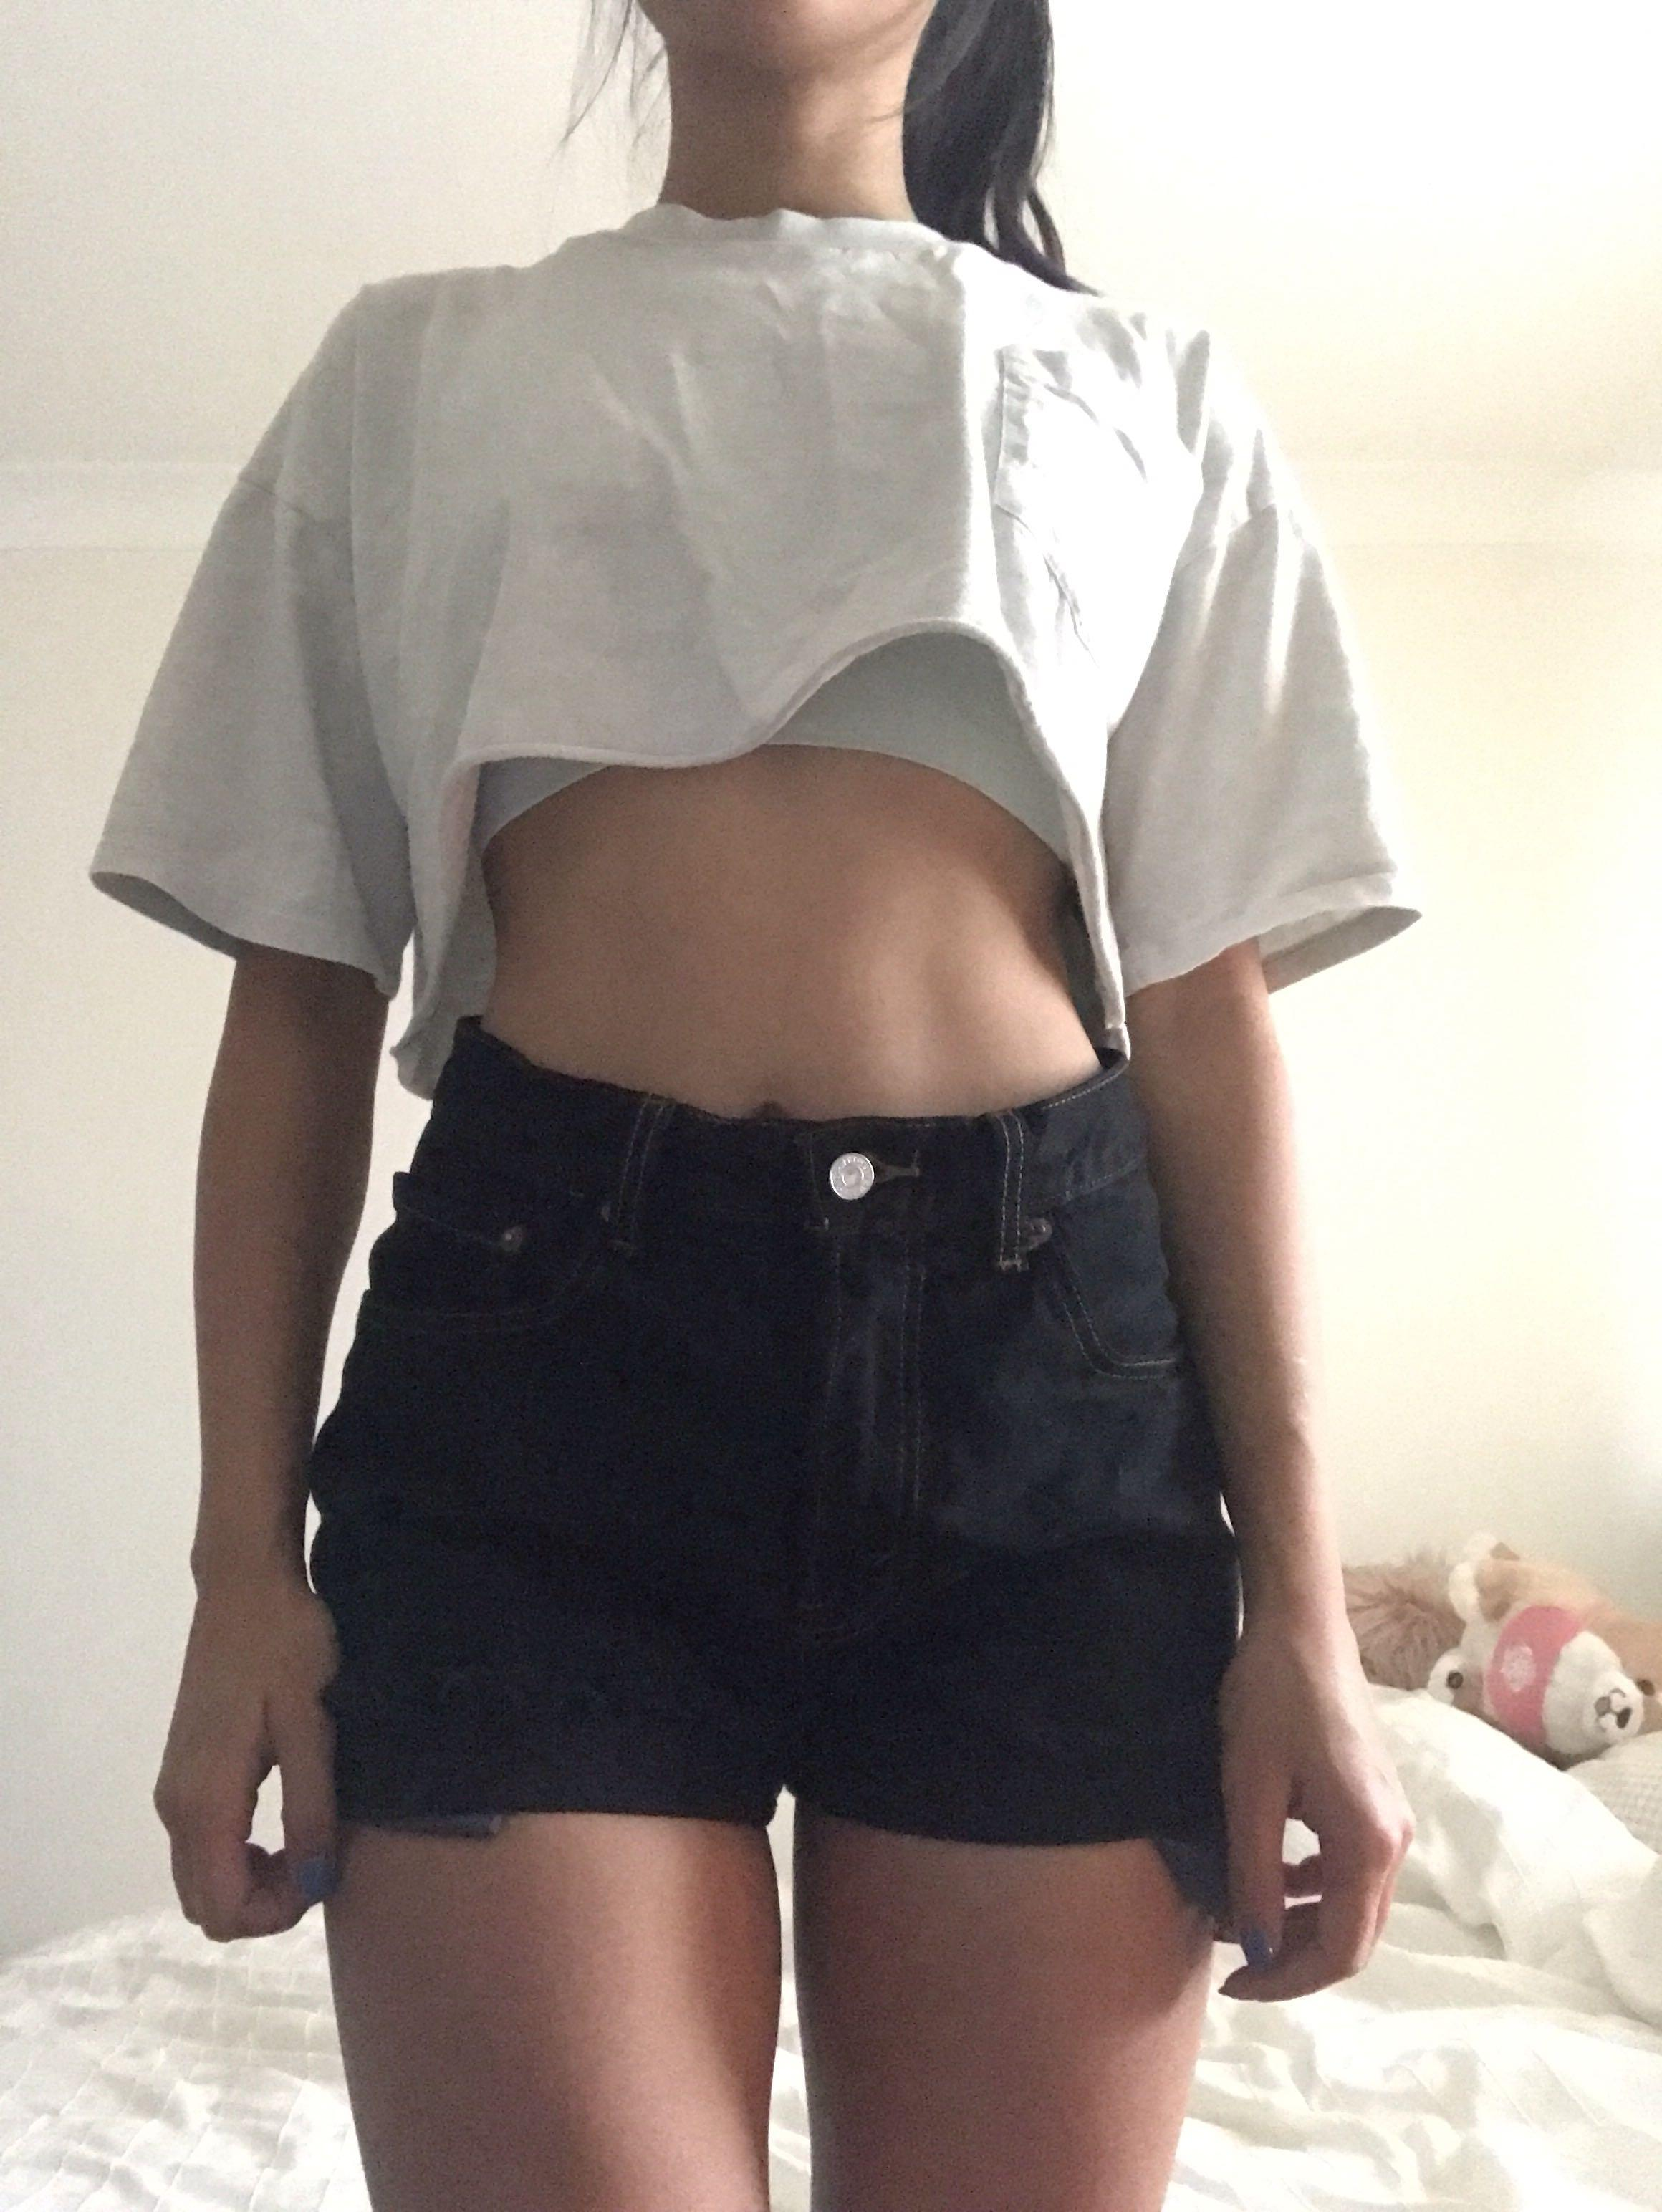 Levi's Denim Shorts - all proceeds will be donated to the Red Cross bushfire appeal